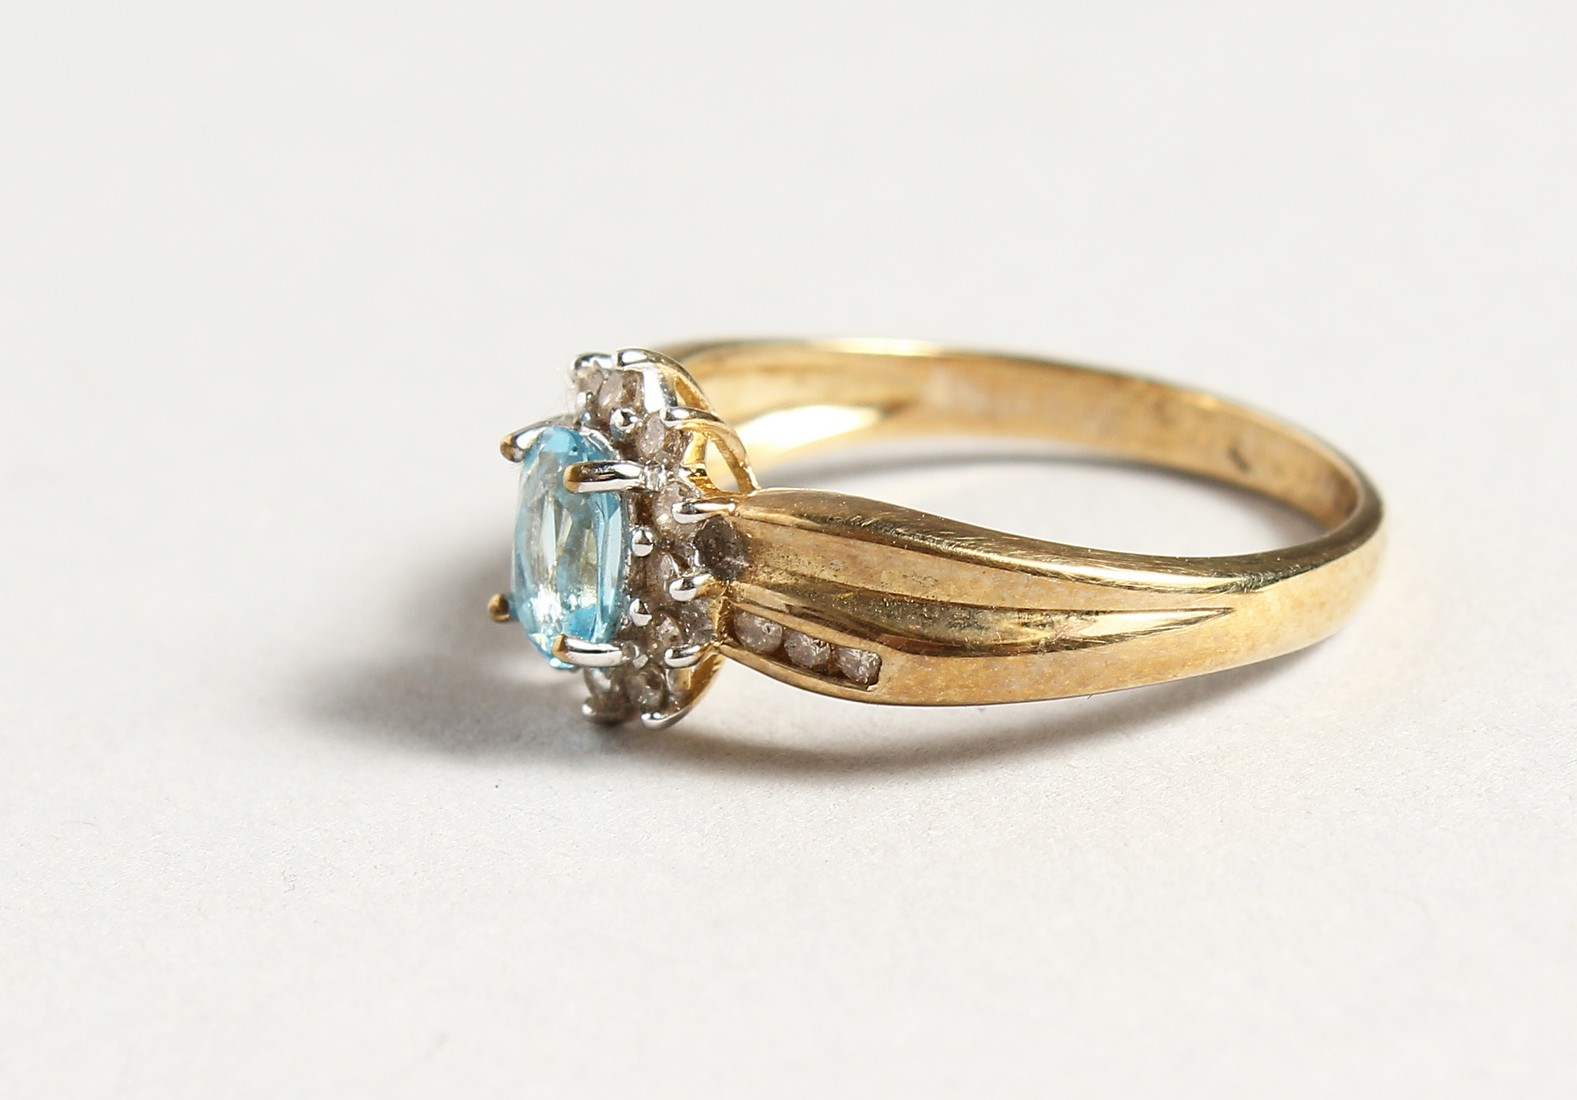 A 9CT GOLD BLUE TOPAZ AND DIAMOND CLUSTER RING - Image 2 of 5